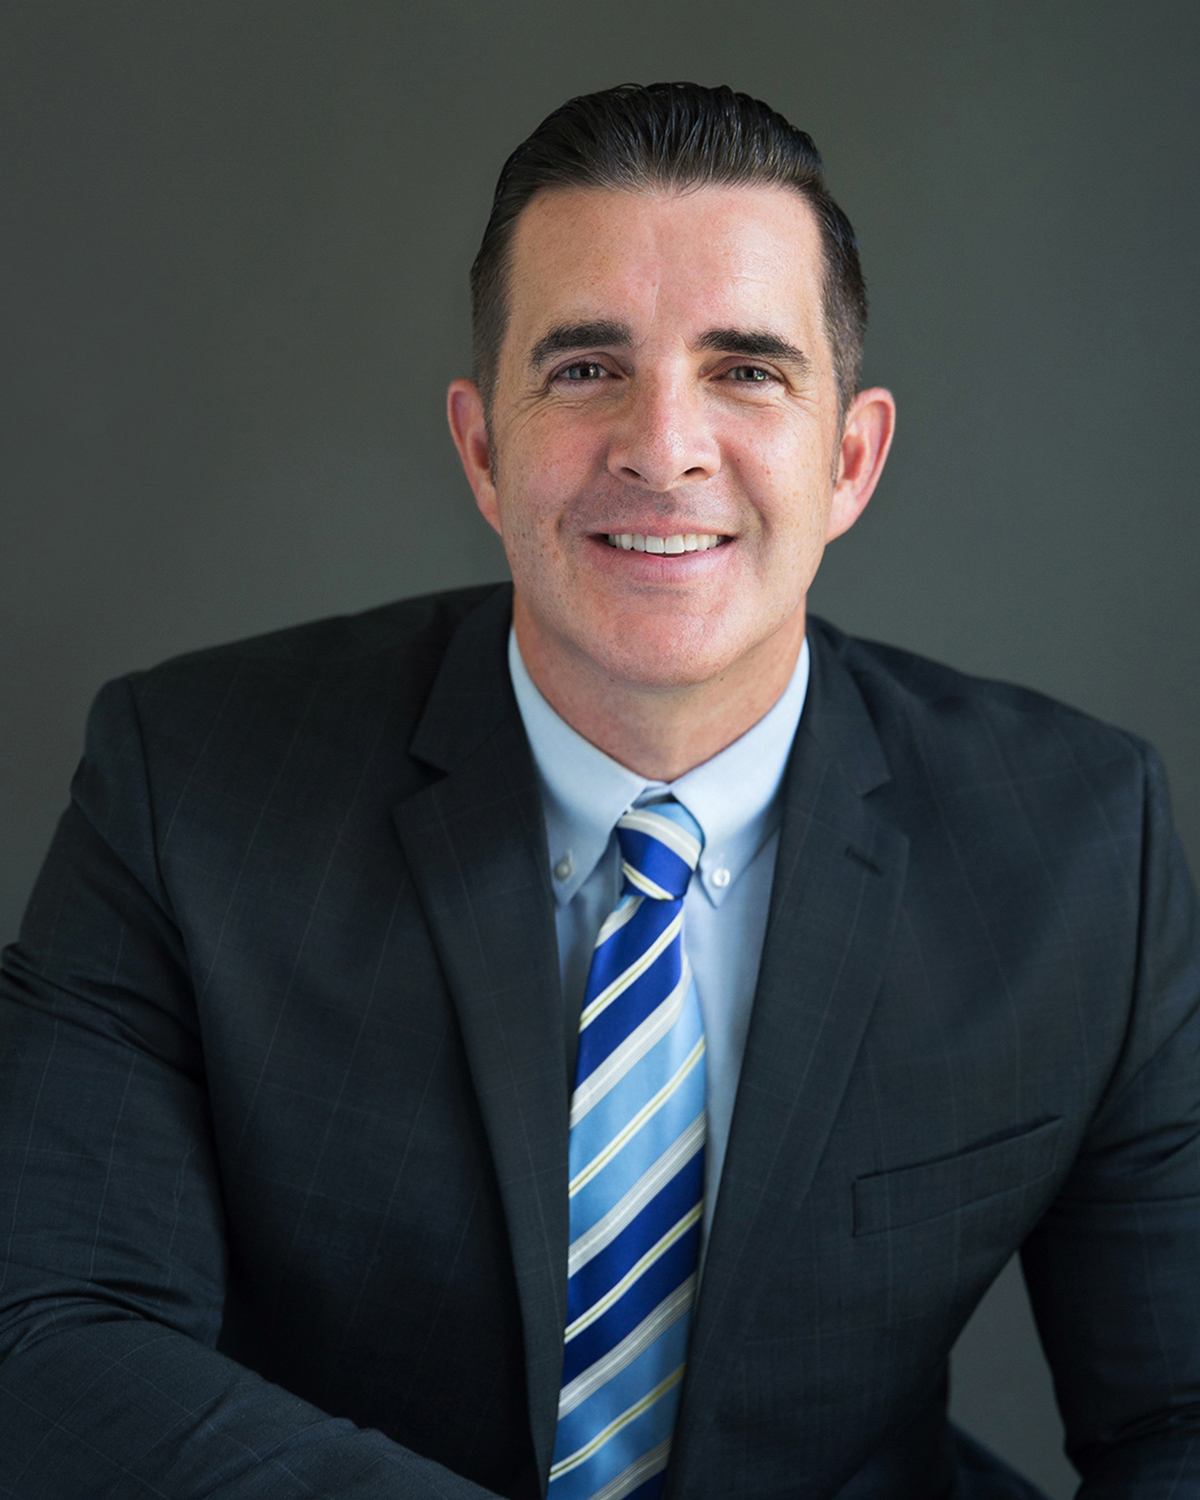 Smiling man wearing suit and tie